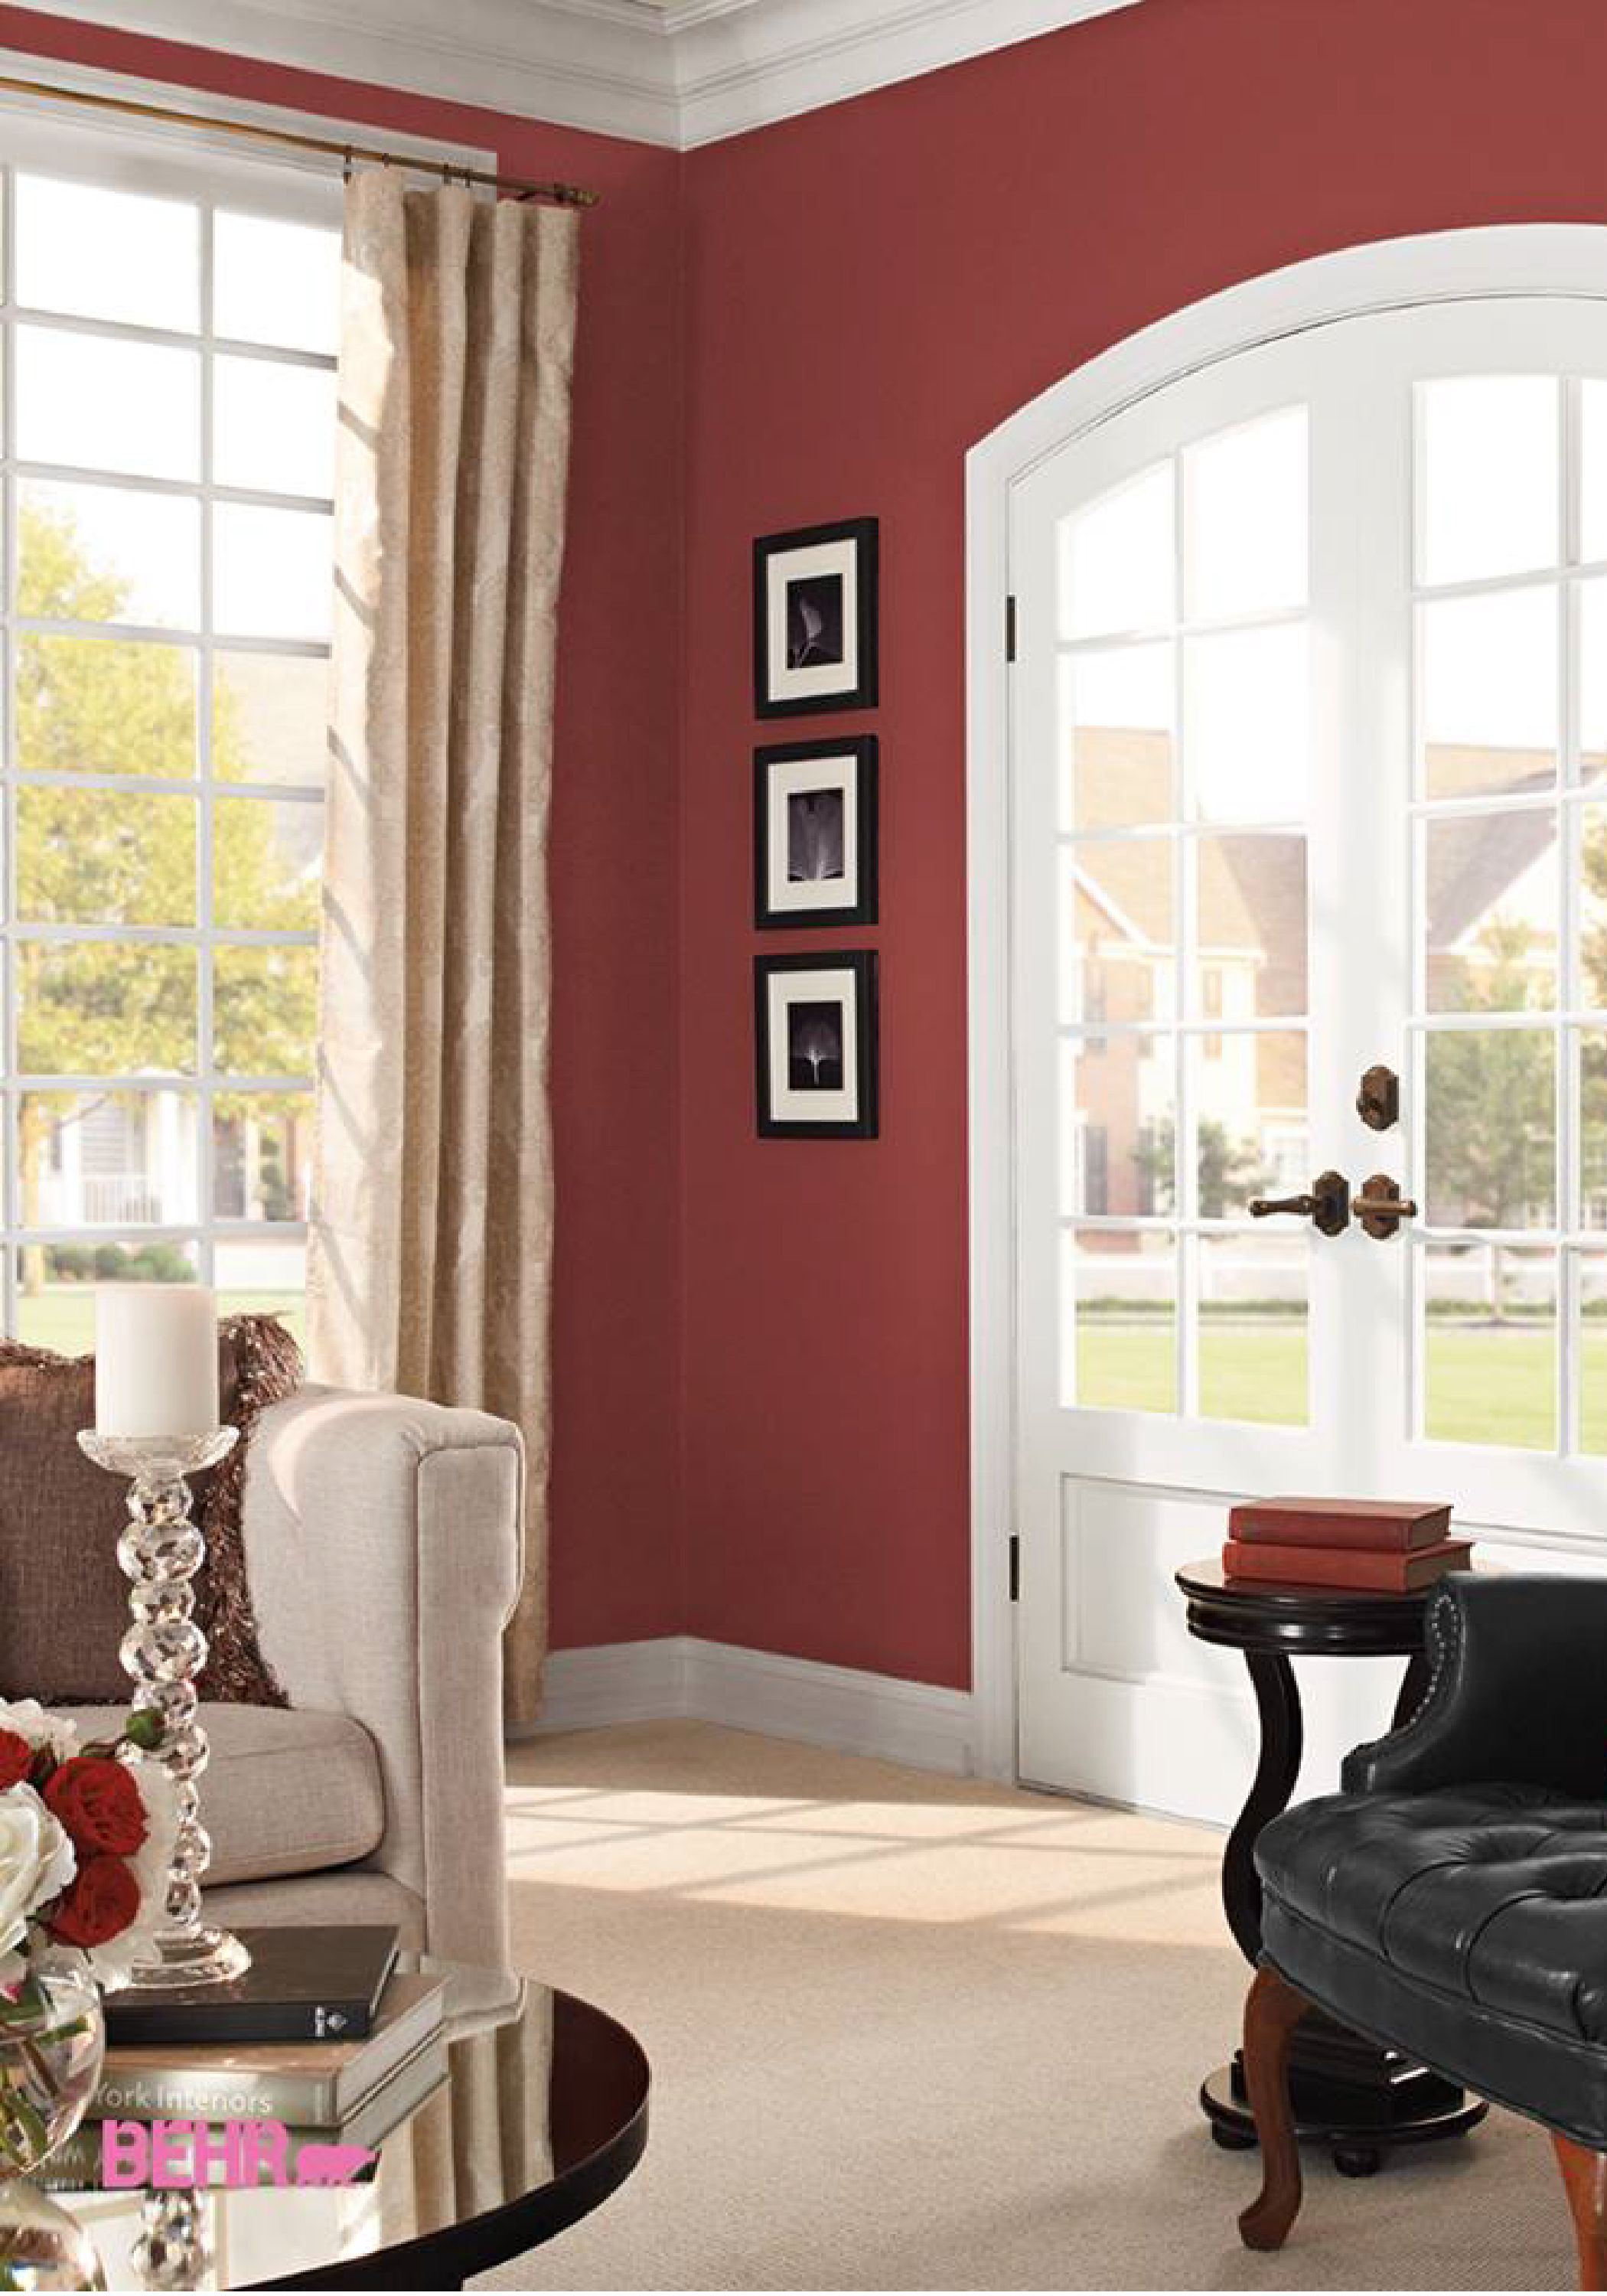 Red Painted Room Design Inspiration And Project Idea Gallery Behr Paint Colors For Living Room Living Room Colors Living Room Paint #red #paint #colors #for #living #room